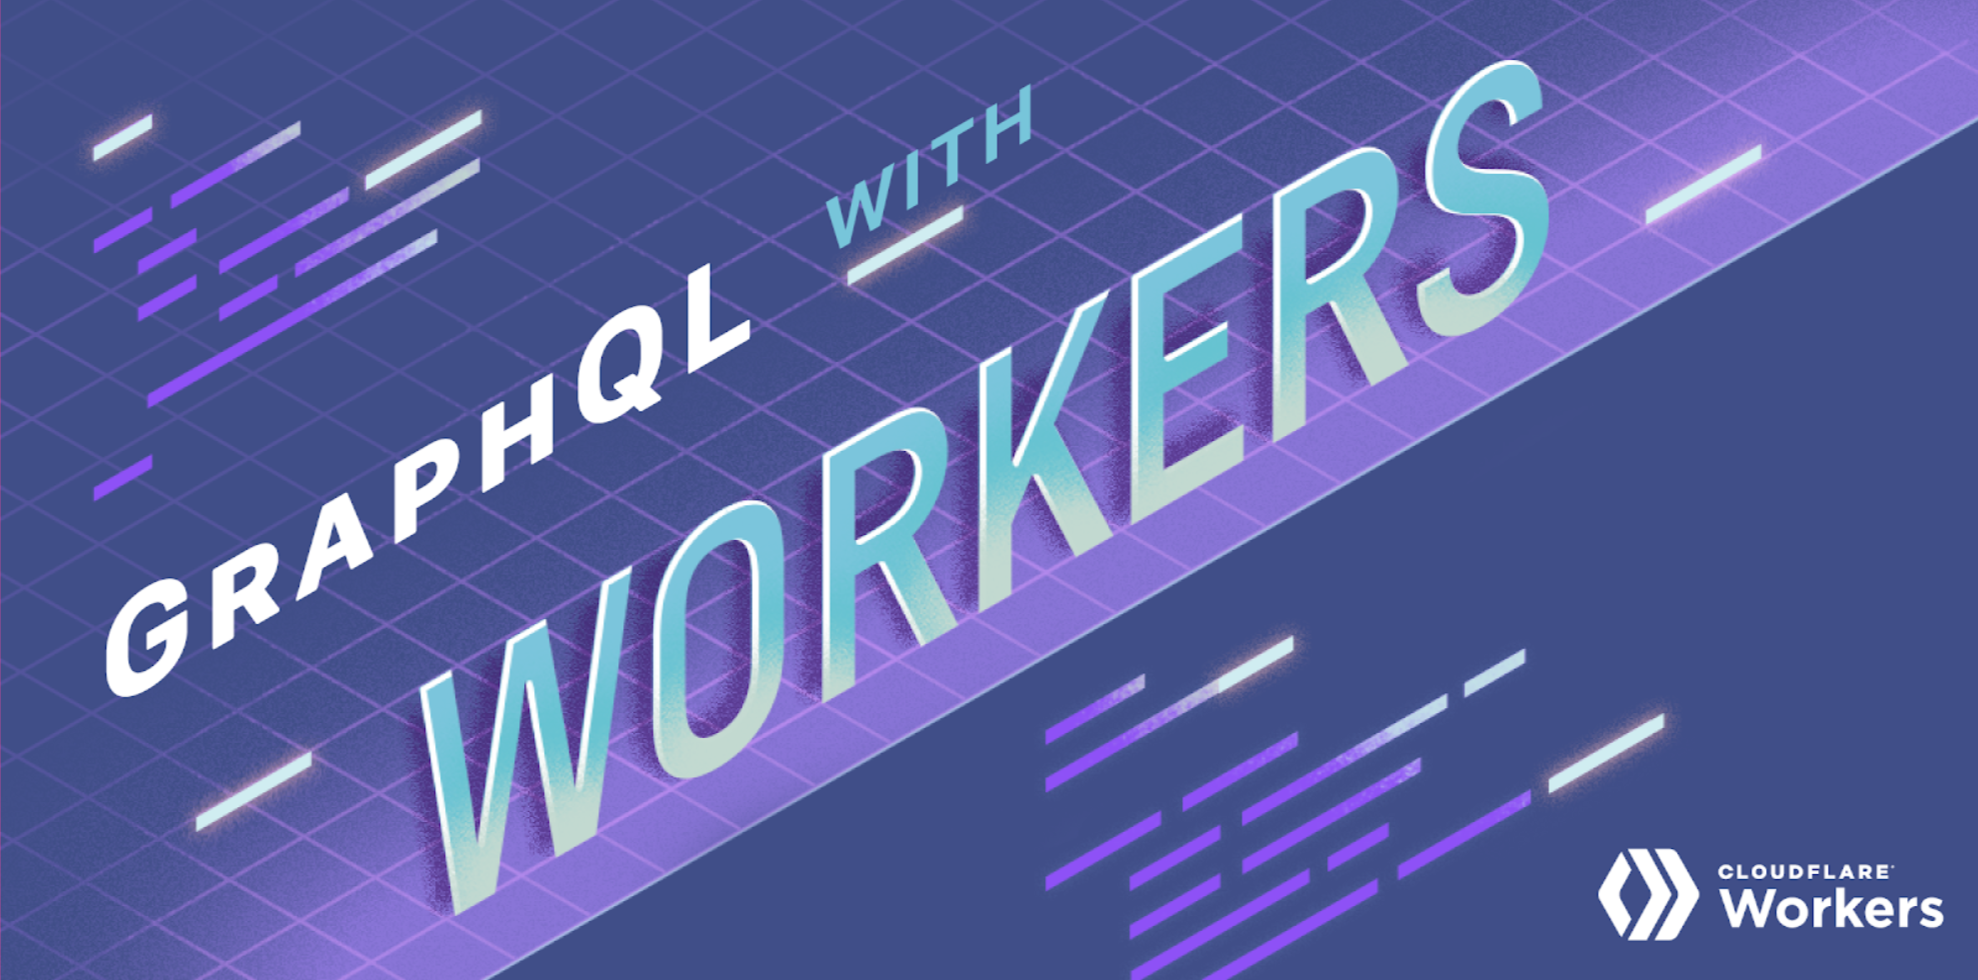 Building a GraphQL server on the edge with Cloudflare Workers